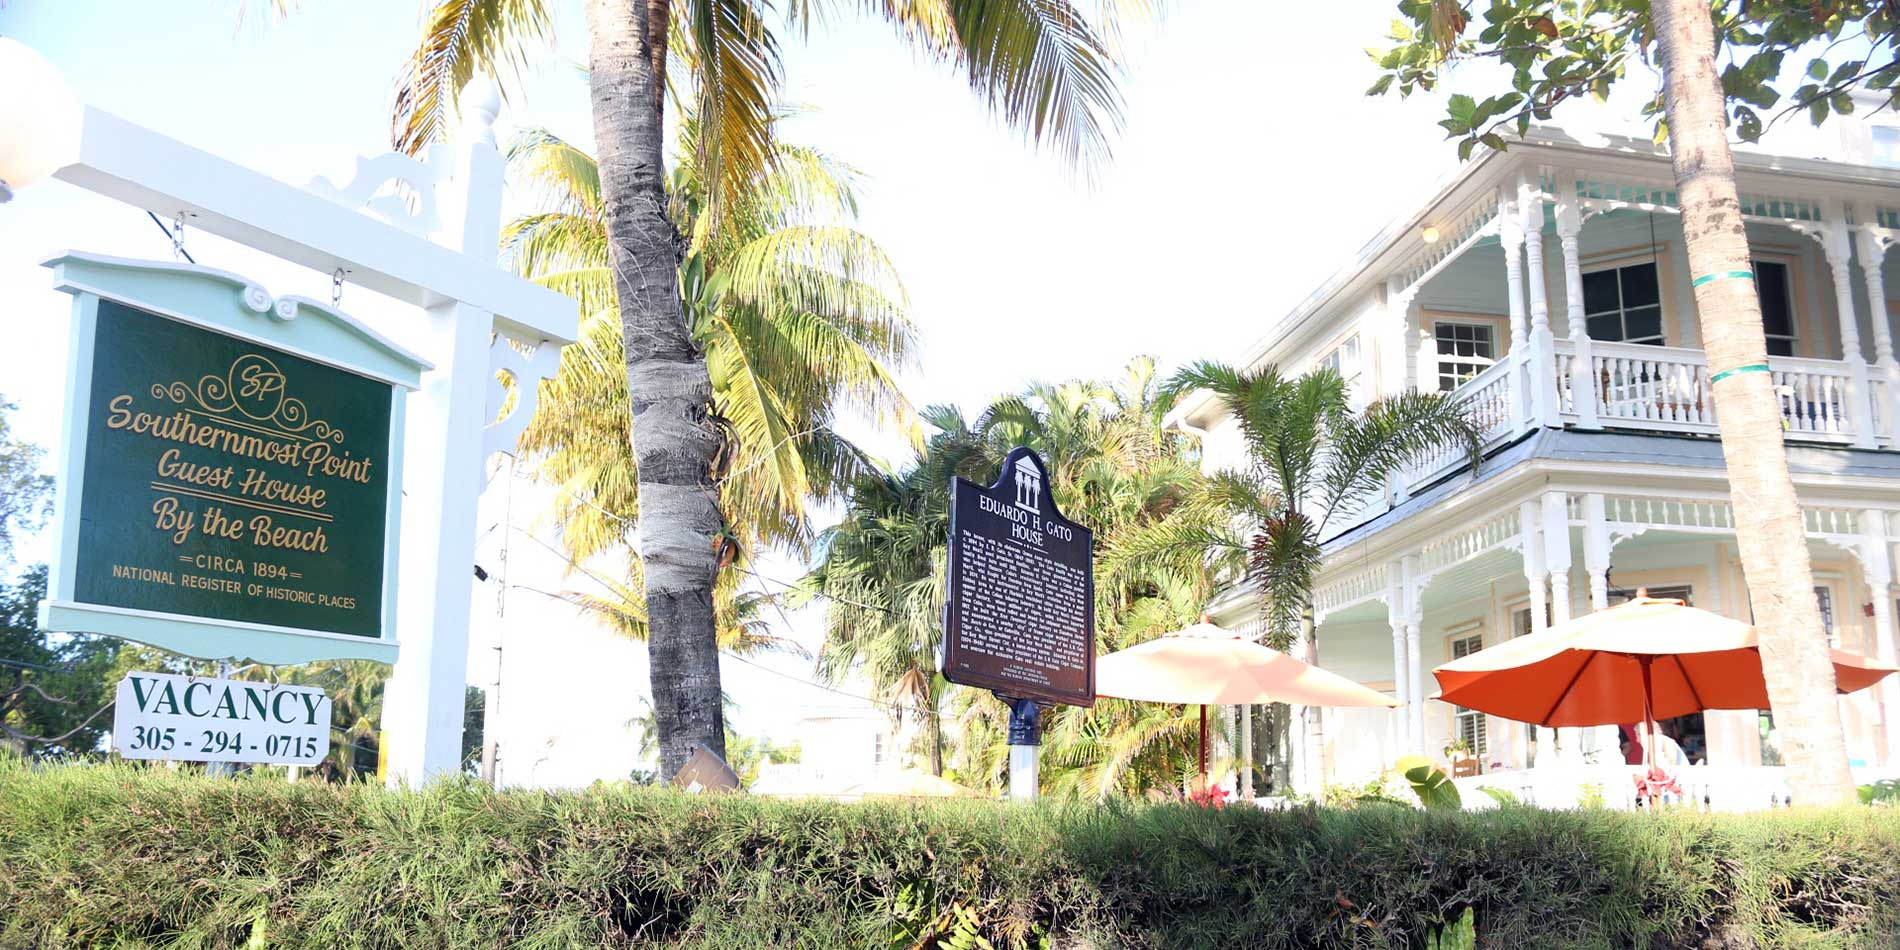 Southernmost Point Guesthouse by the beach